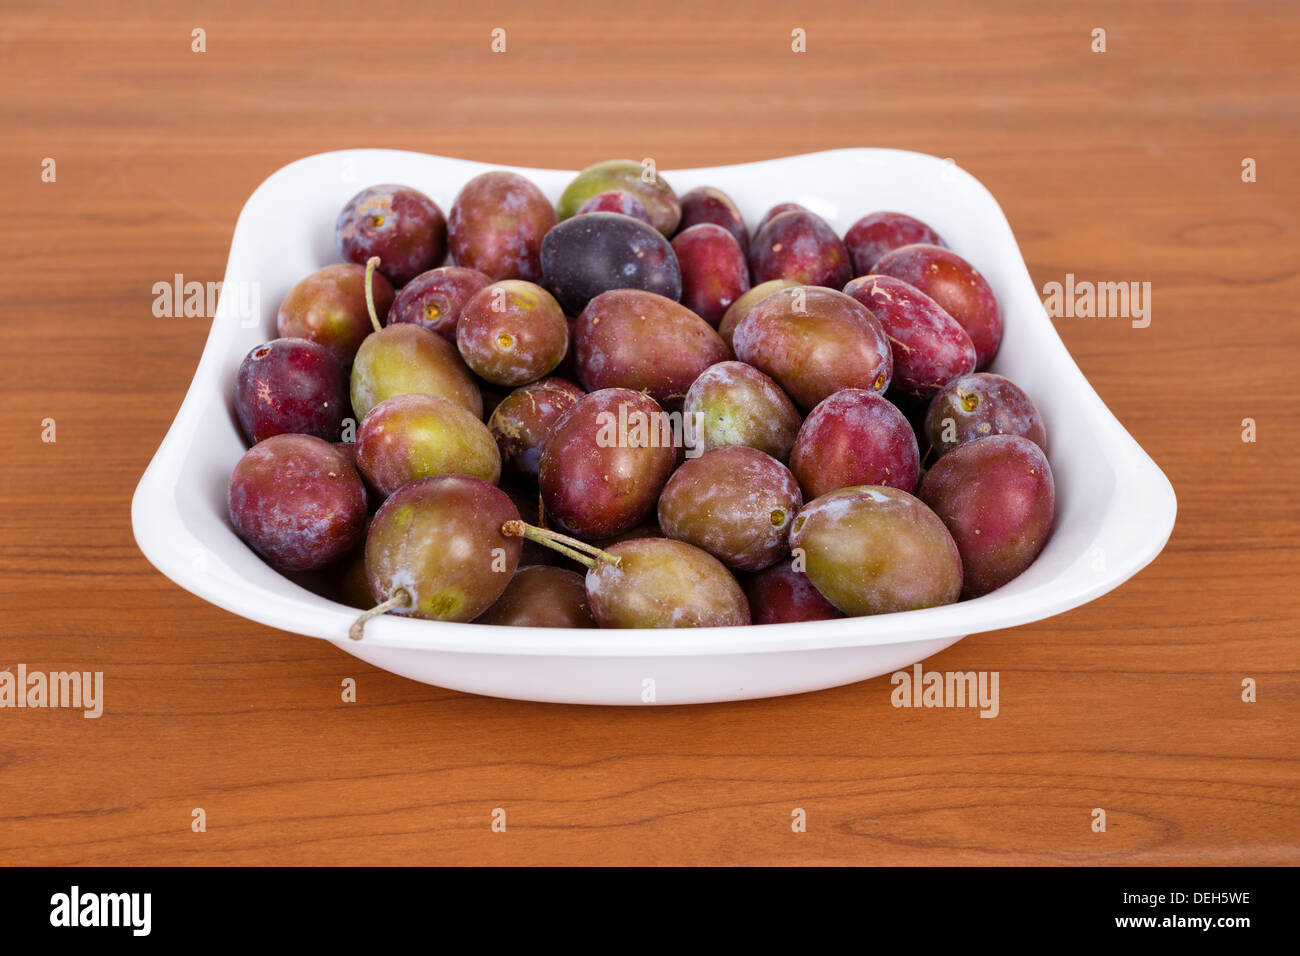 Acid purple and green Plums (Blackthorns) in bowl on wooden desk - Stock Image